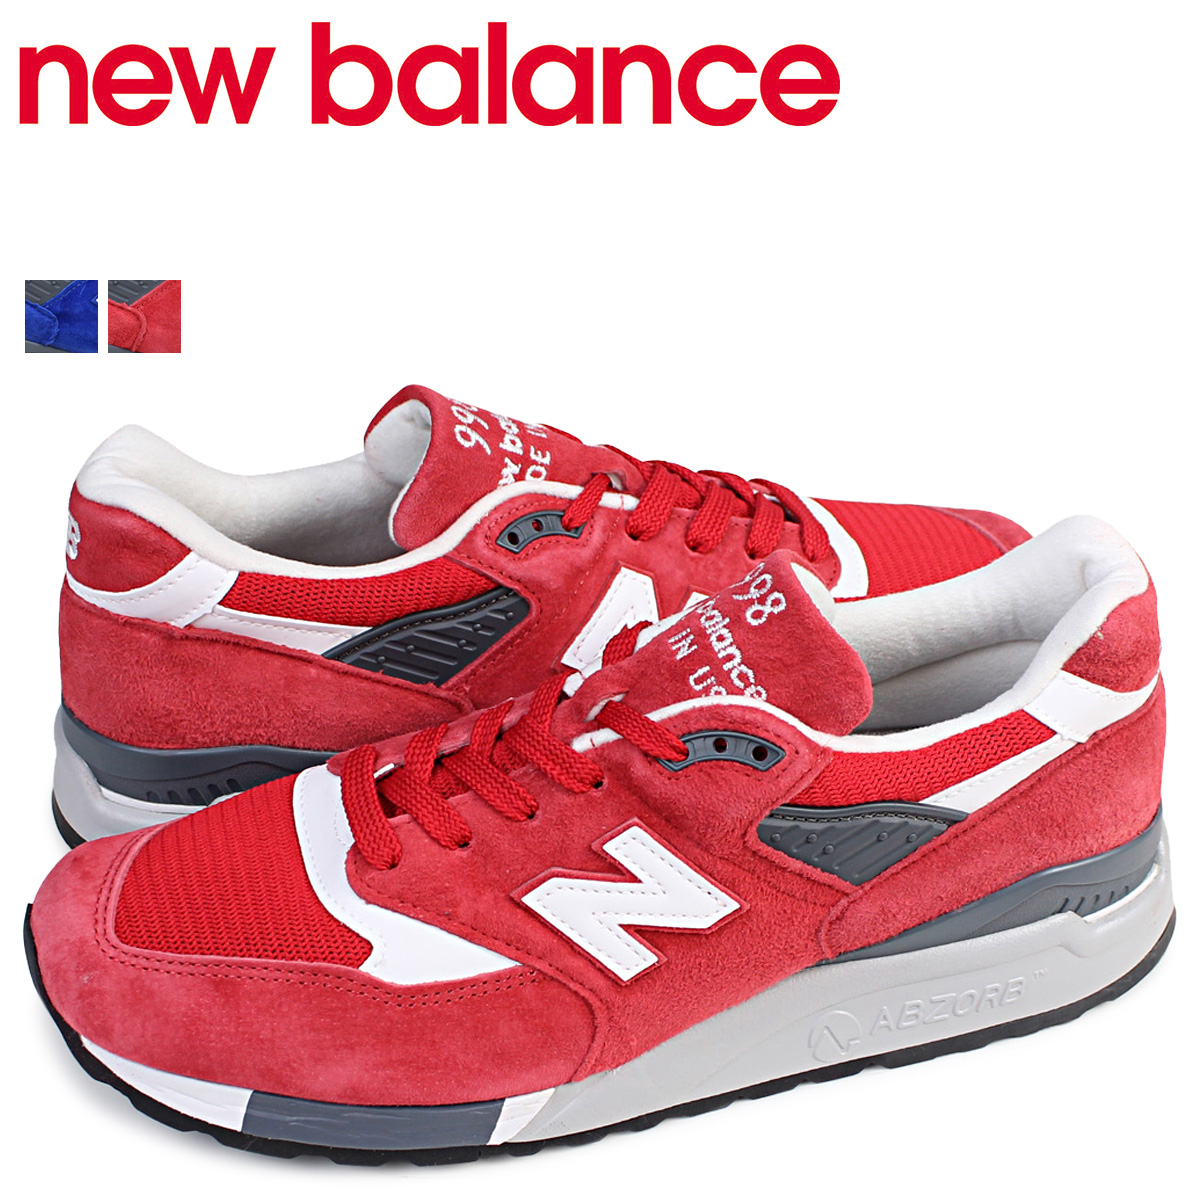 sale retailer 57bba 93e3b new balance 998 men's New Balance sneakers M998CRD M998CBU D Wise shoes red  red